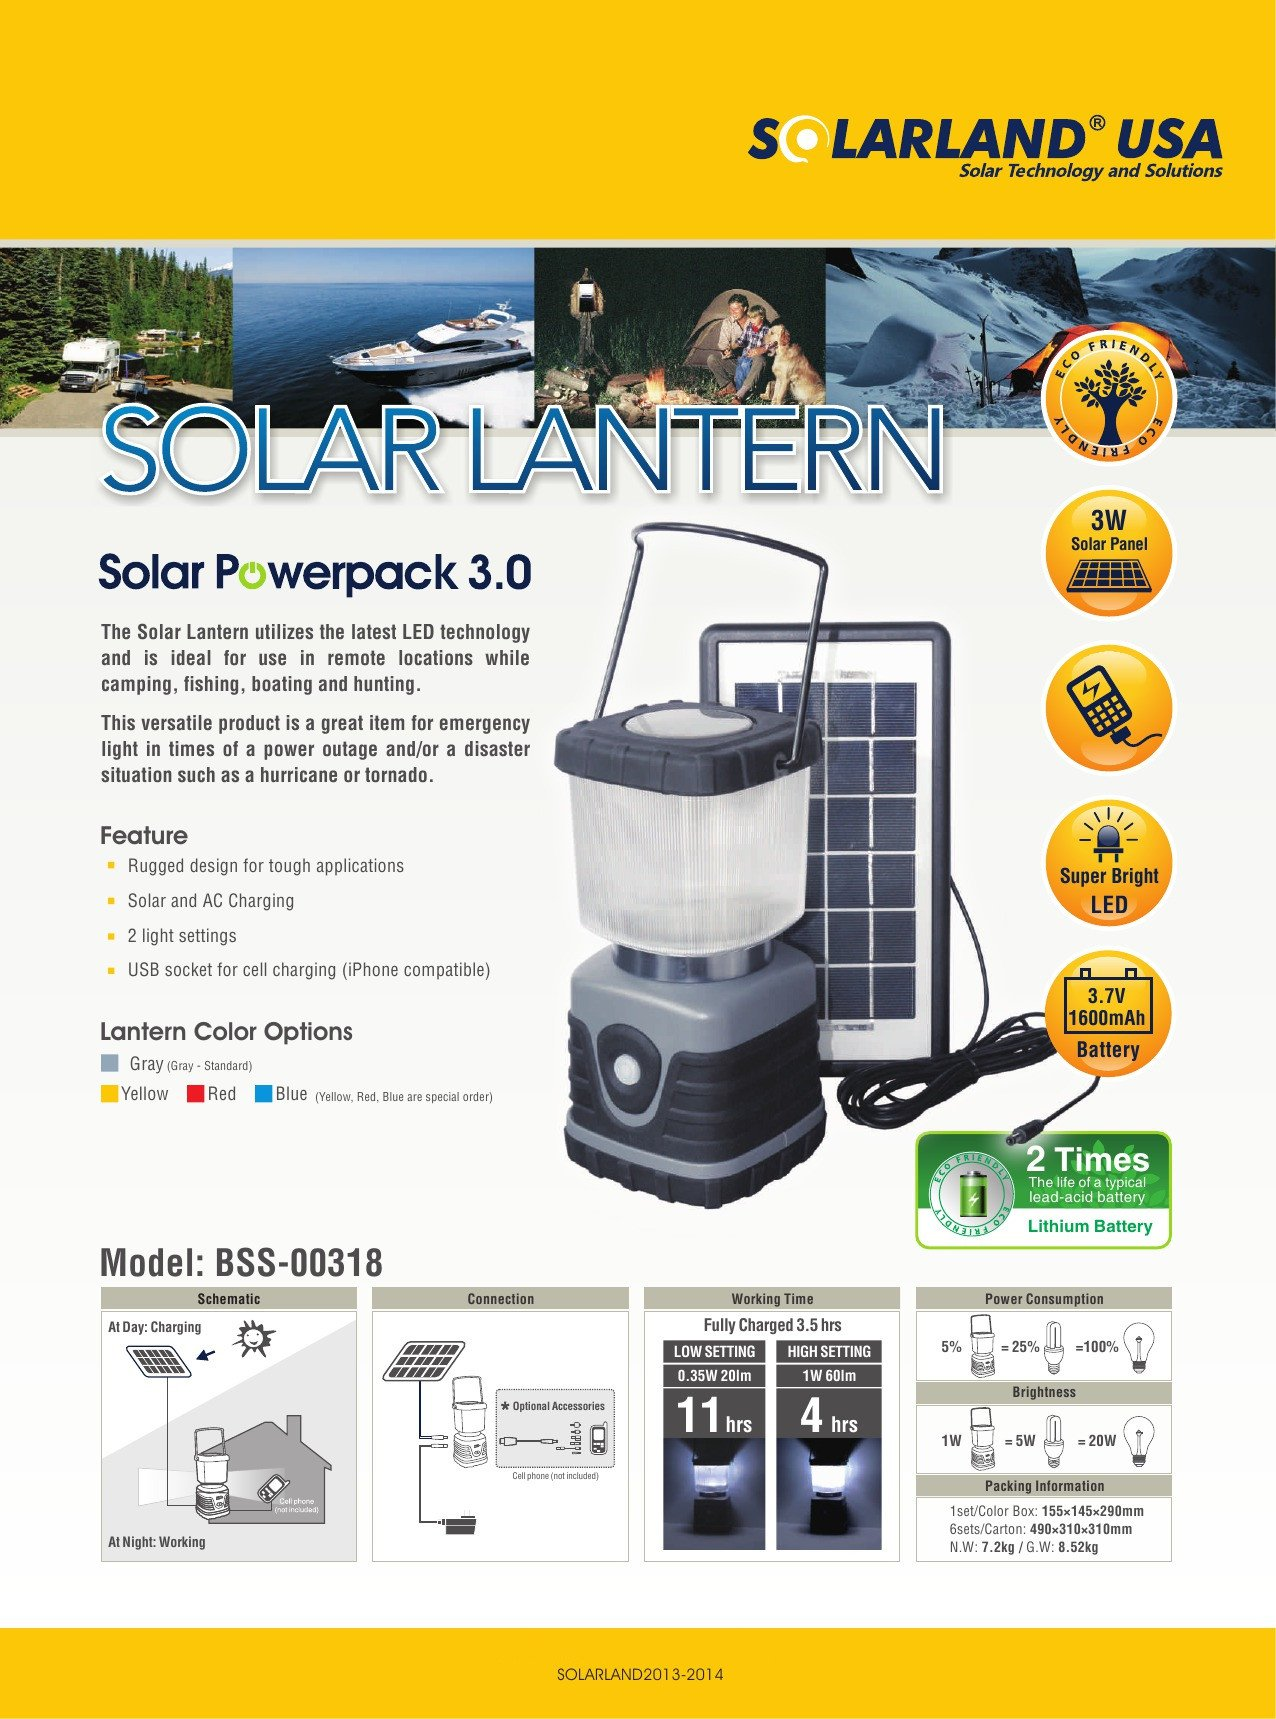 Solarland 3w Solar Panel Powered LED Camping and Emergency Lantern